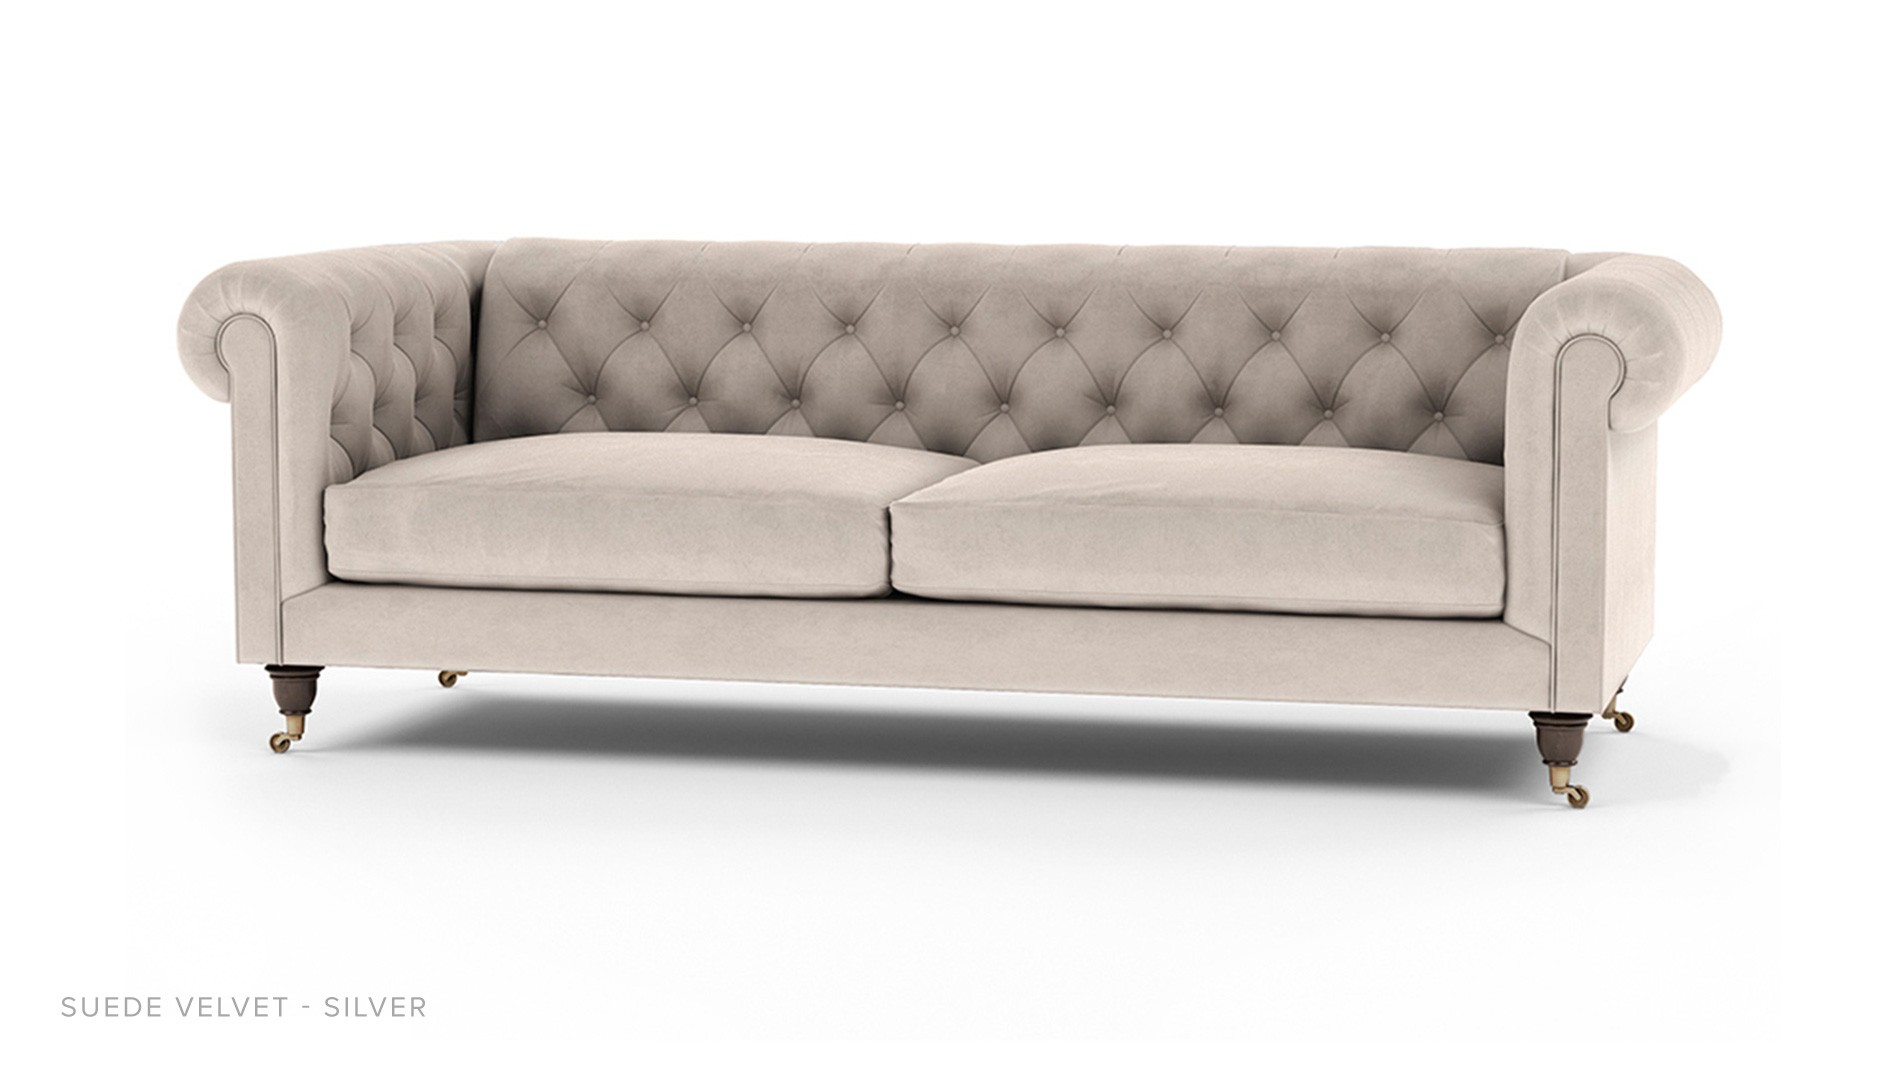 Chesterfield Sofa Chesterfield Sofa - luxdeco.com OVCGNDS